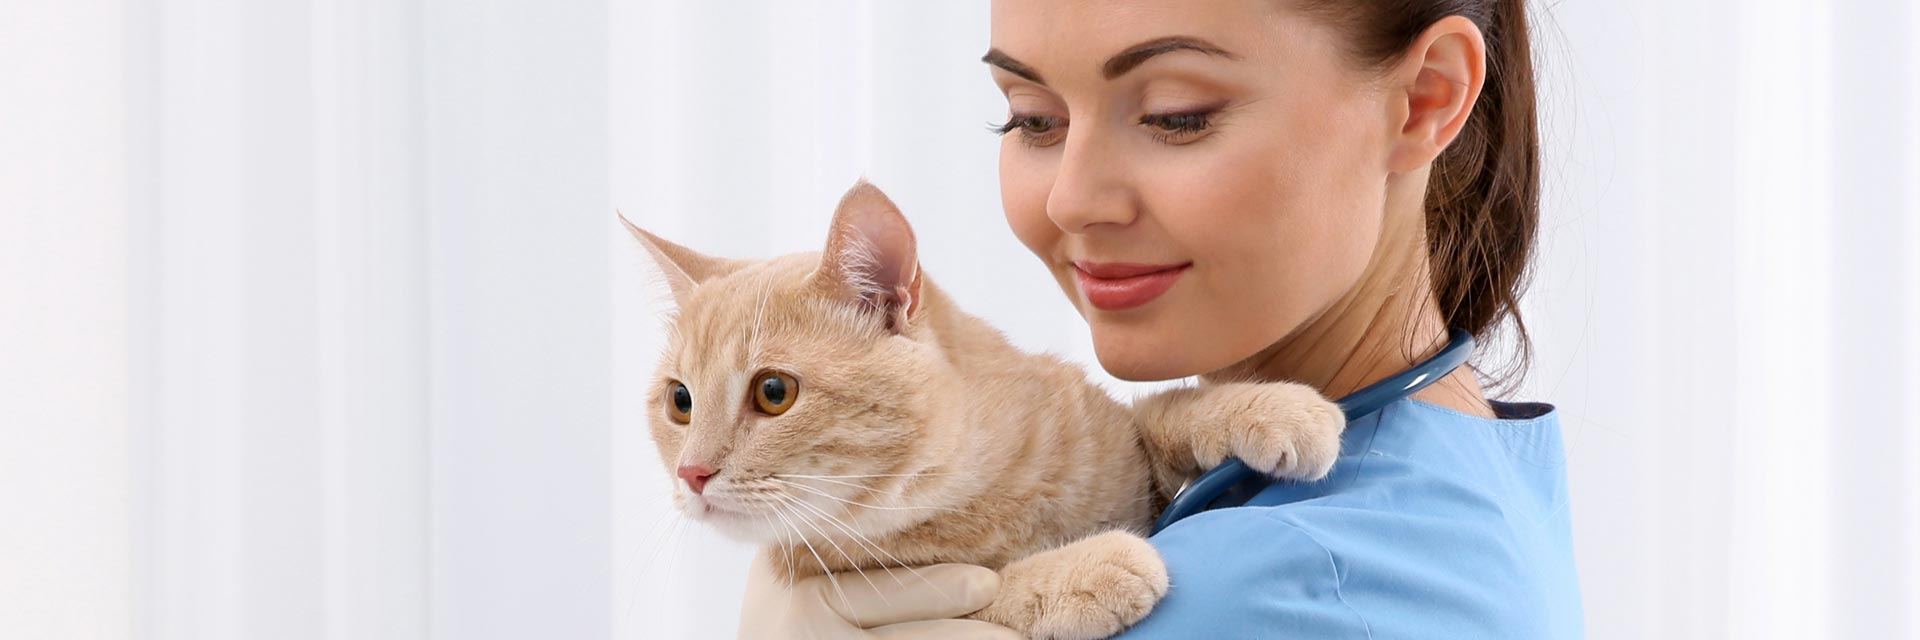 cat care, preventative cat care, vet visits, healthy cat, routine vet check-up